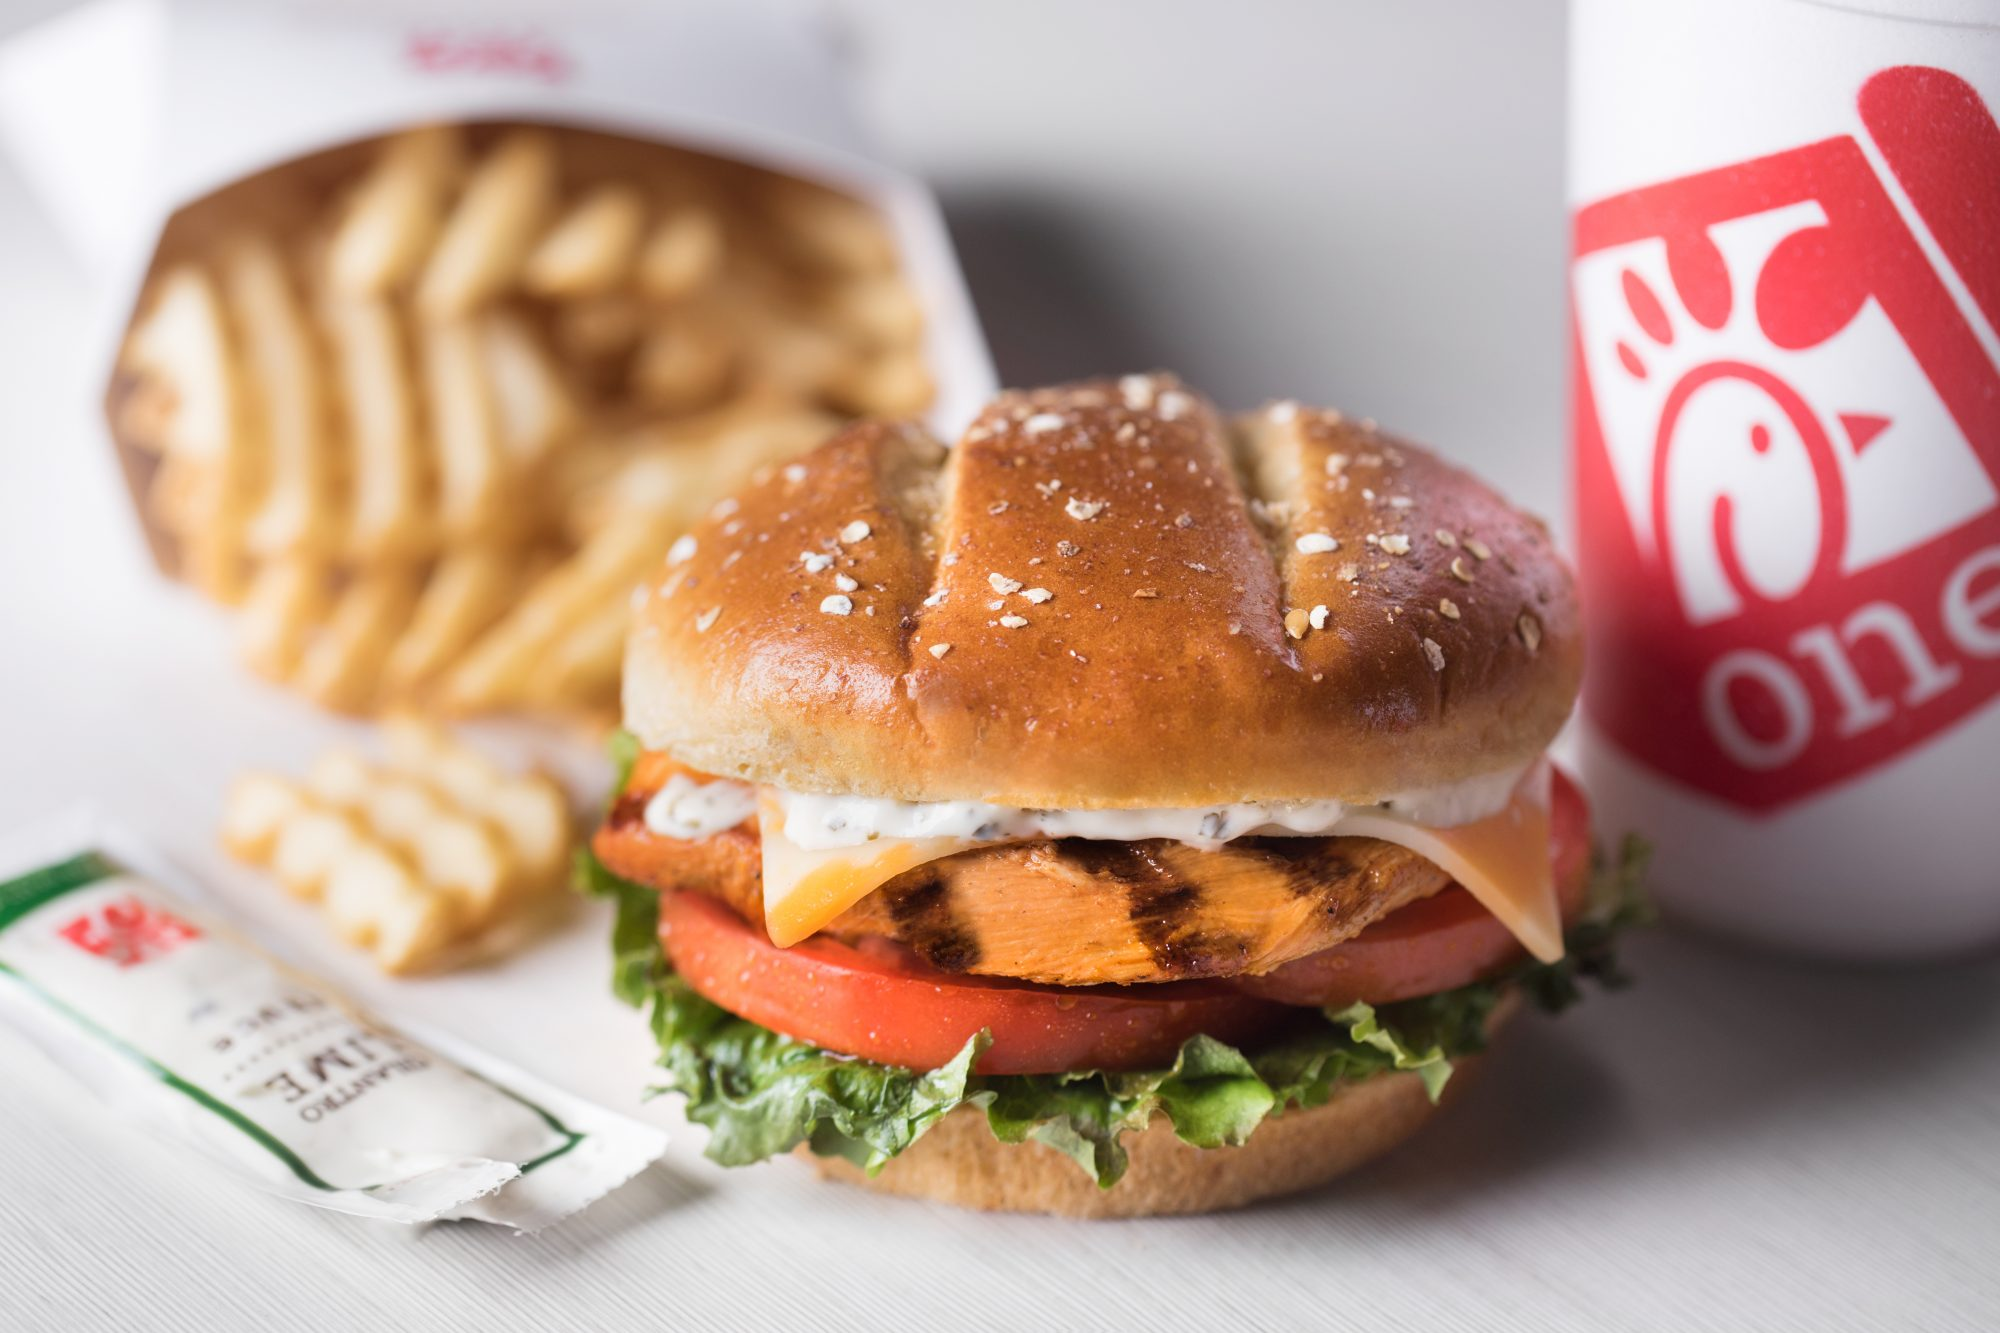 Chick-Fil-A Spicy Grilled Chicken Sandwich